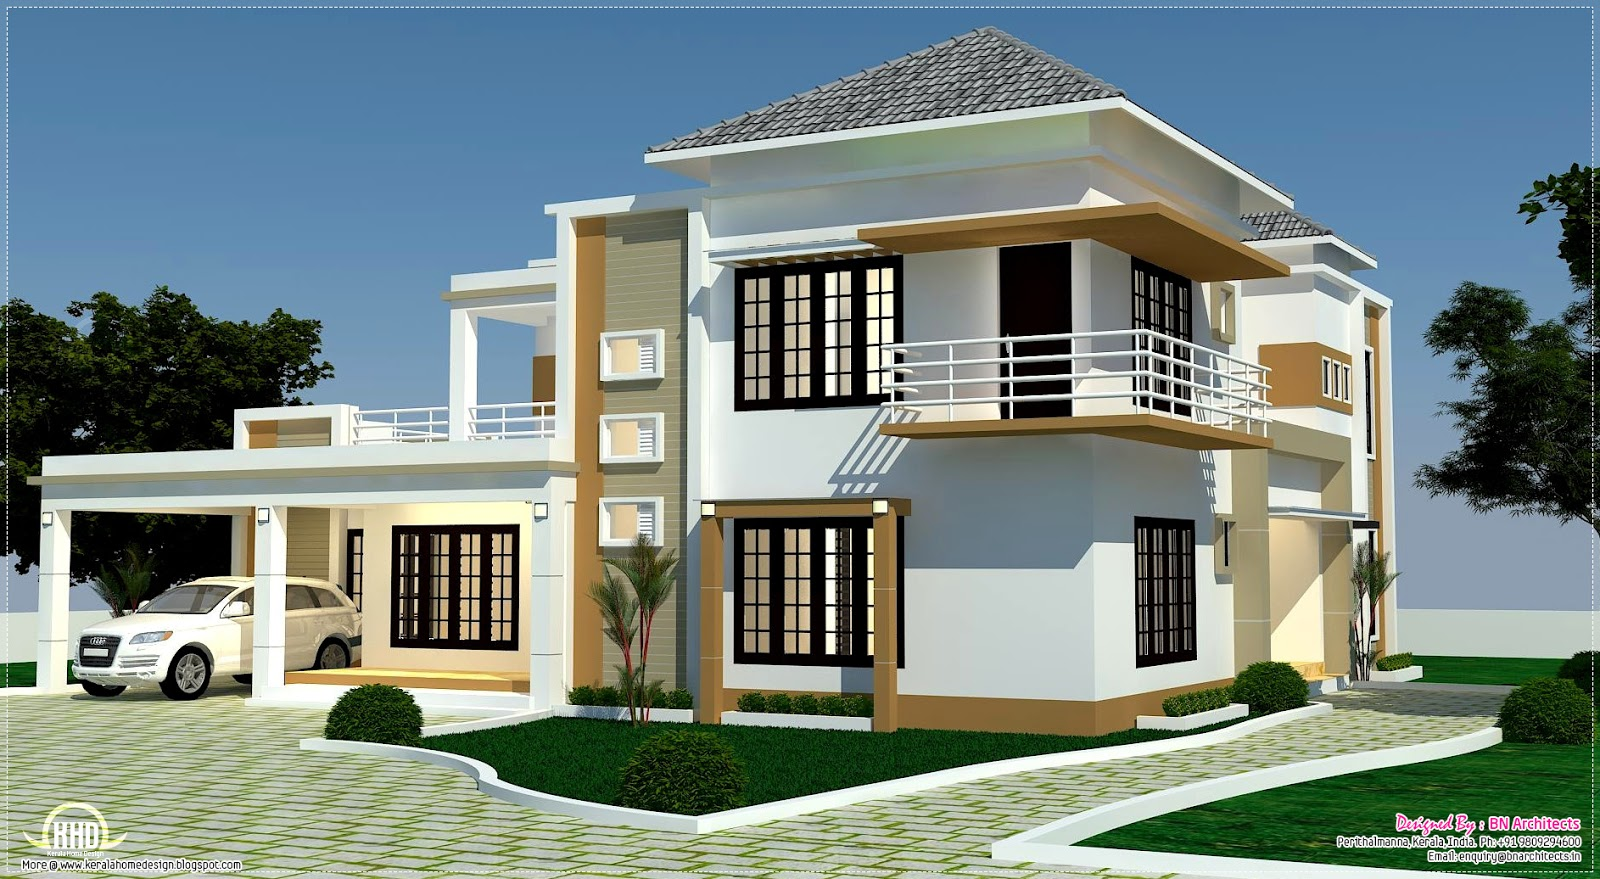 Floor plan 3d views and interiors of 4 bedroom villa for Home designs 3d images